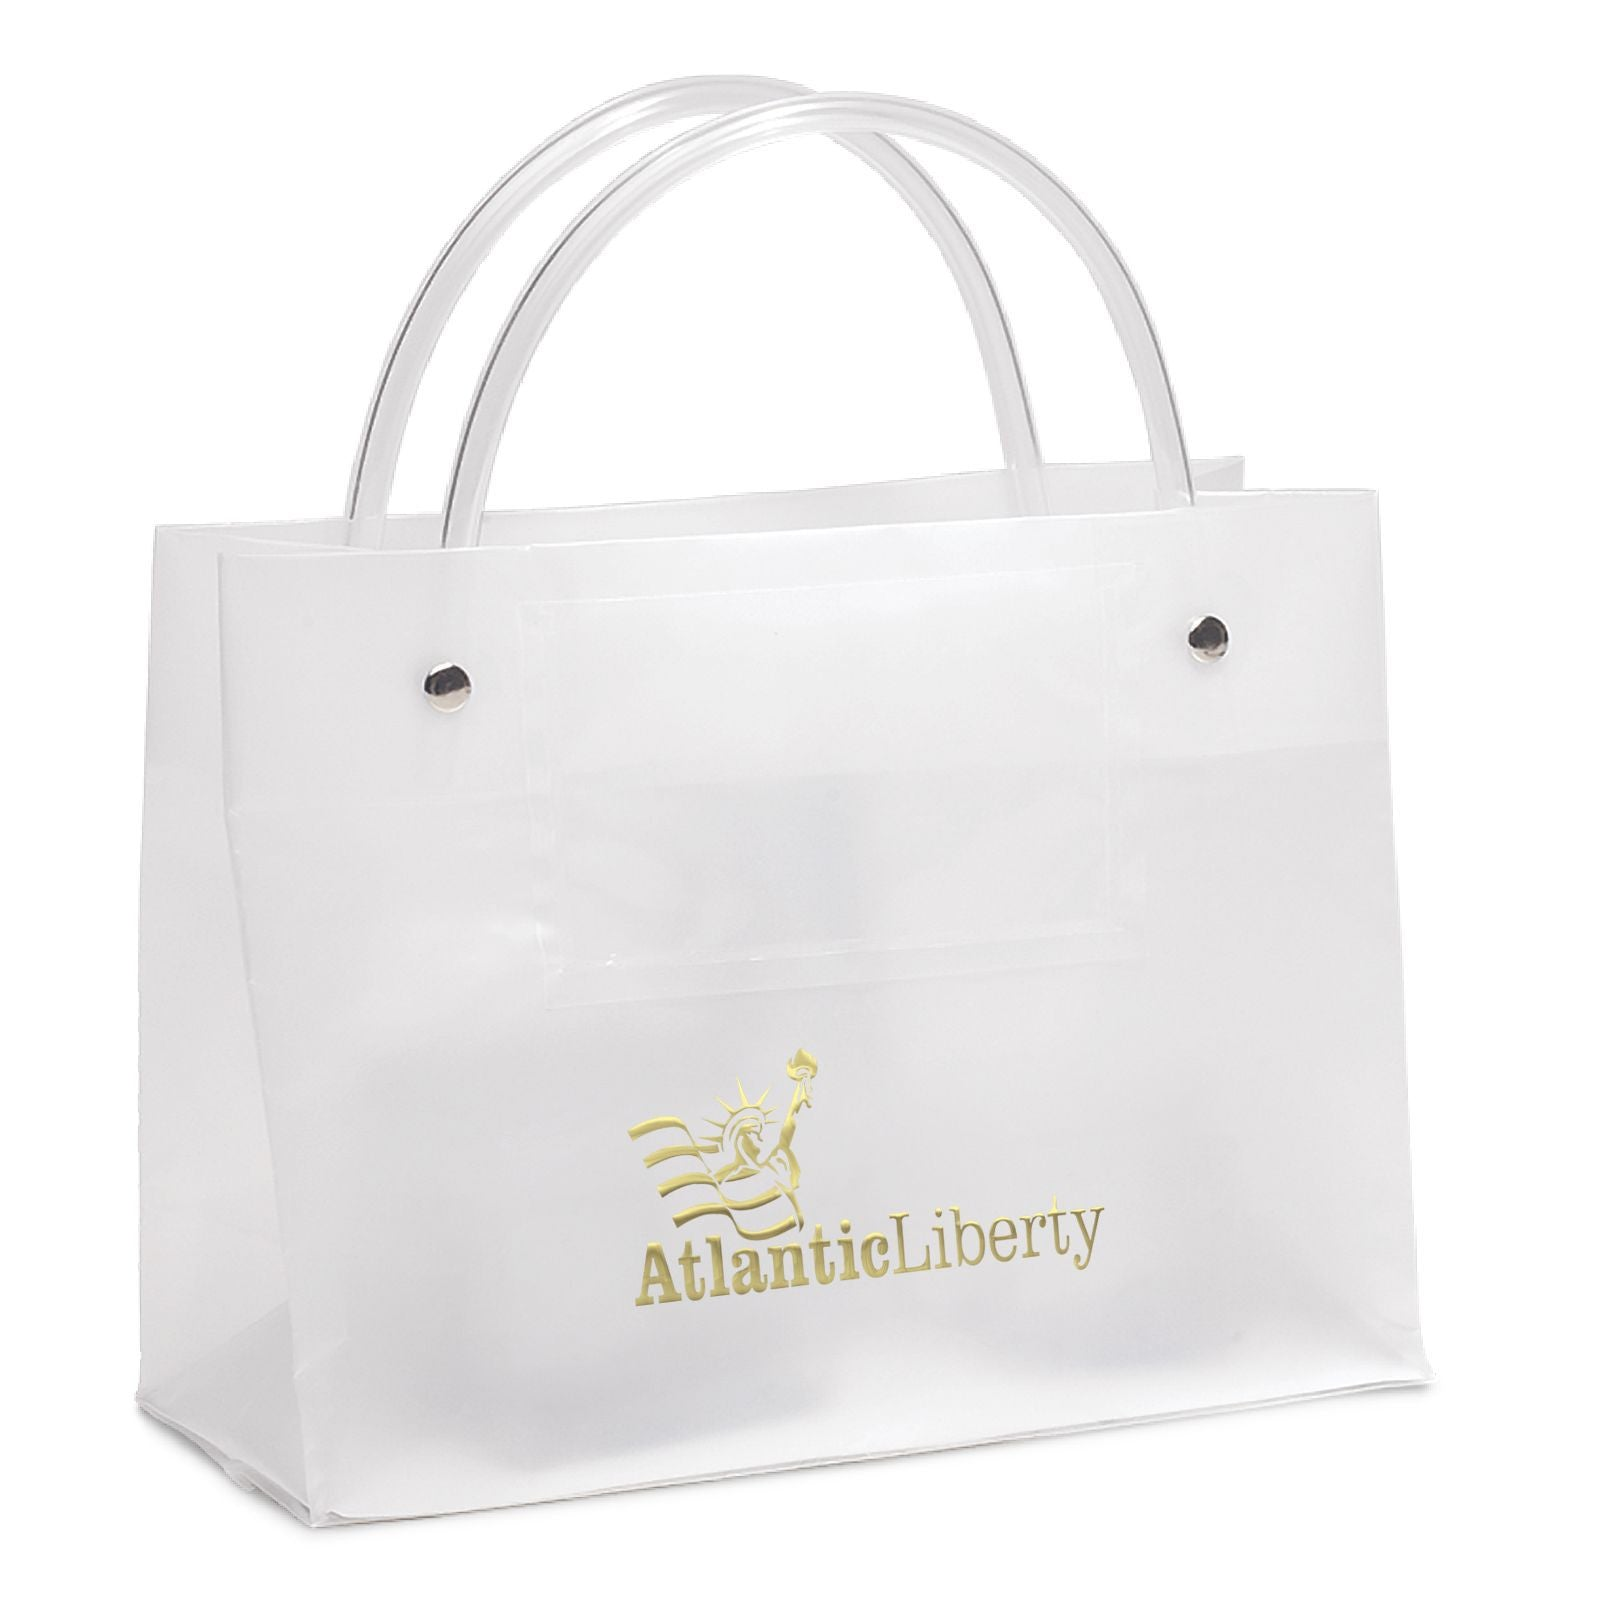 frosty clear plastic bag with card pocket - Custom Plastic Bags